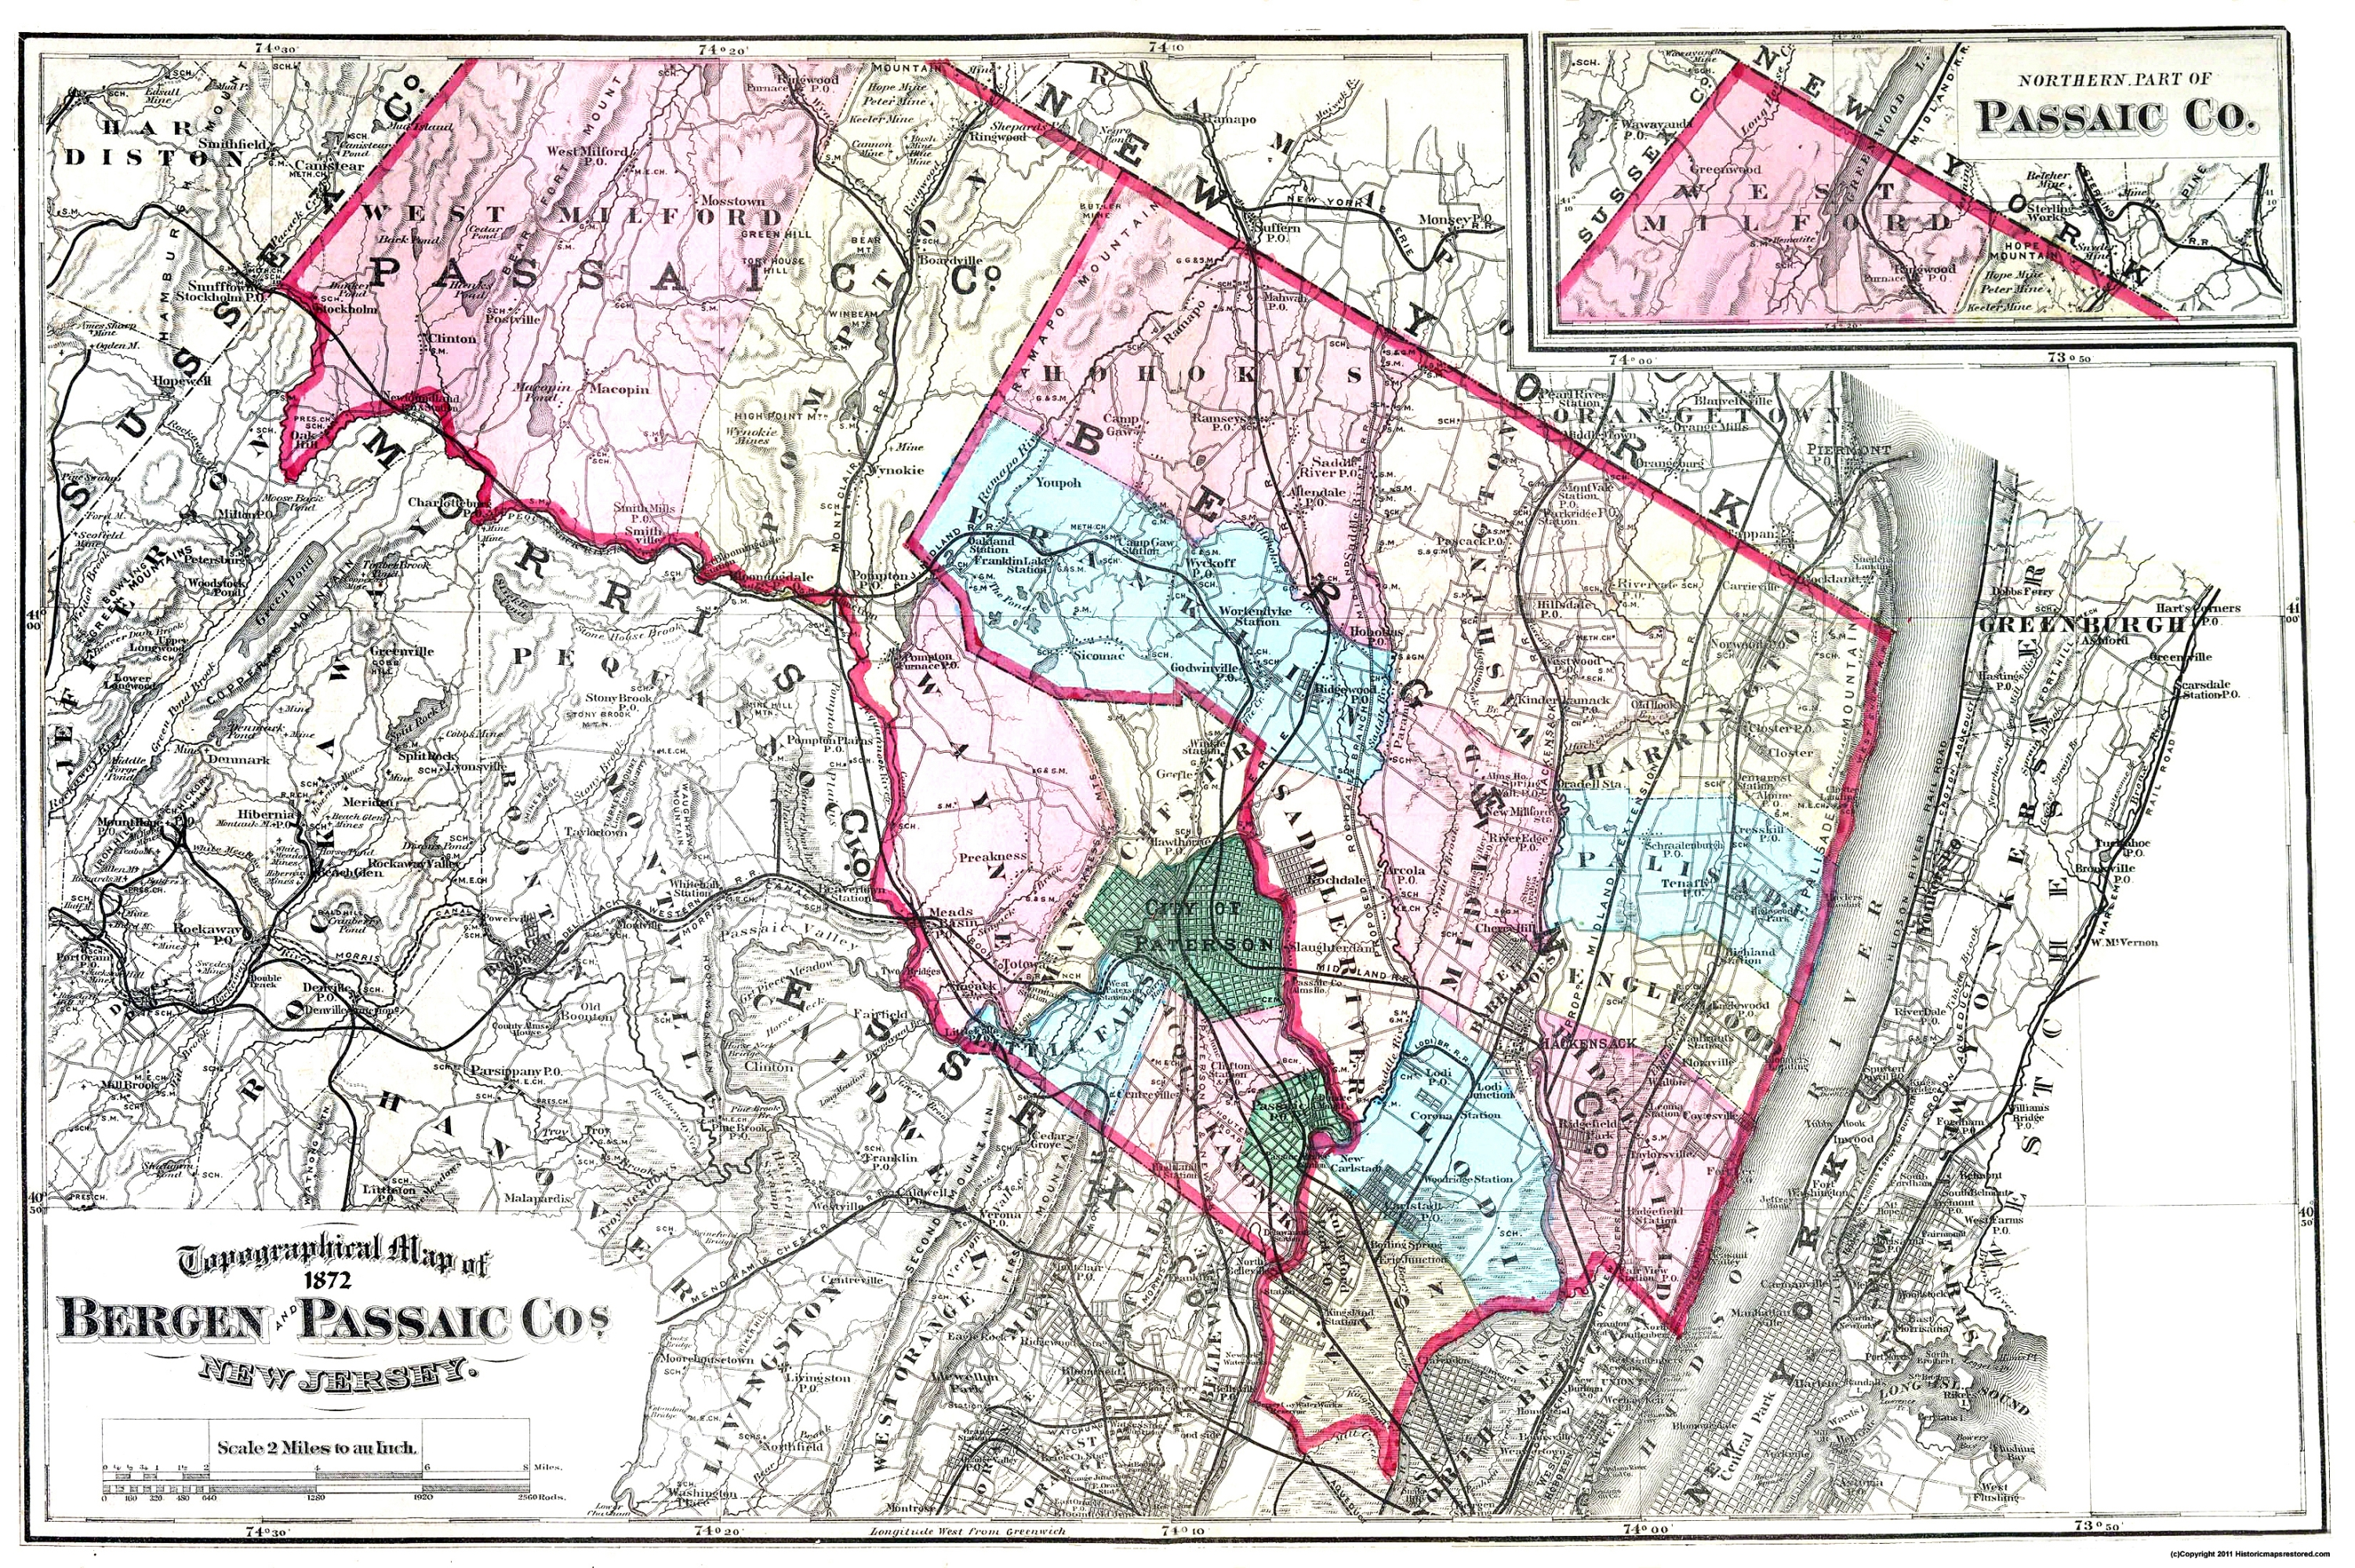 Old County Map - Bergen, Paic New Jersey - 1872 on